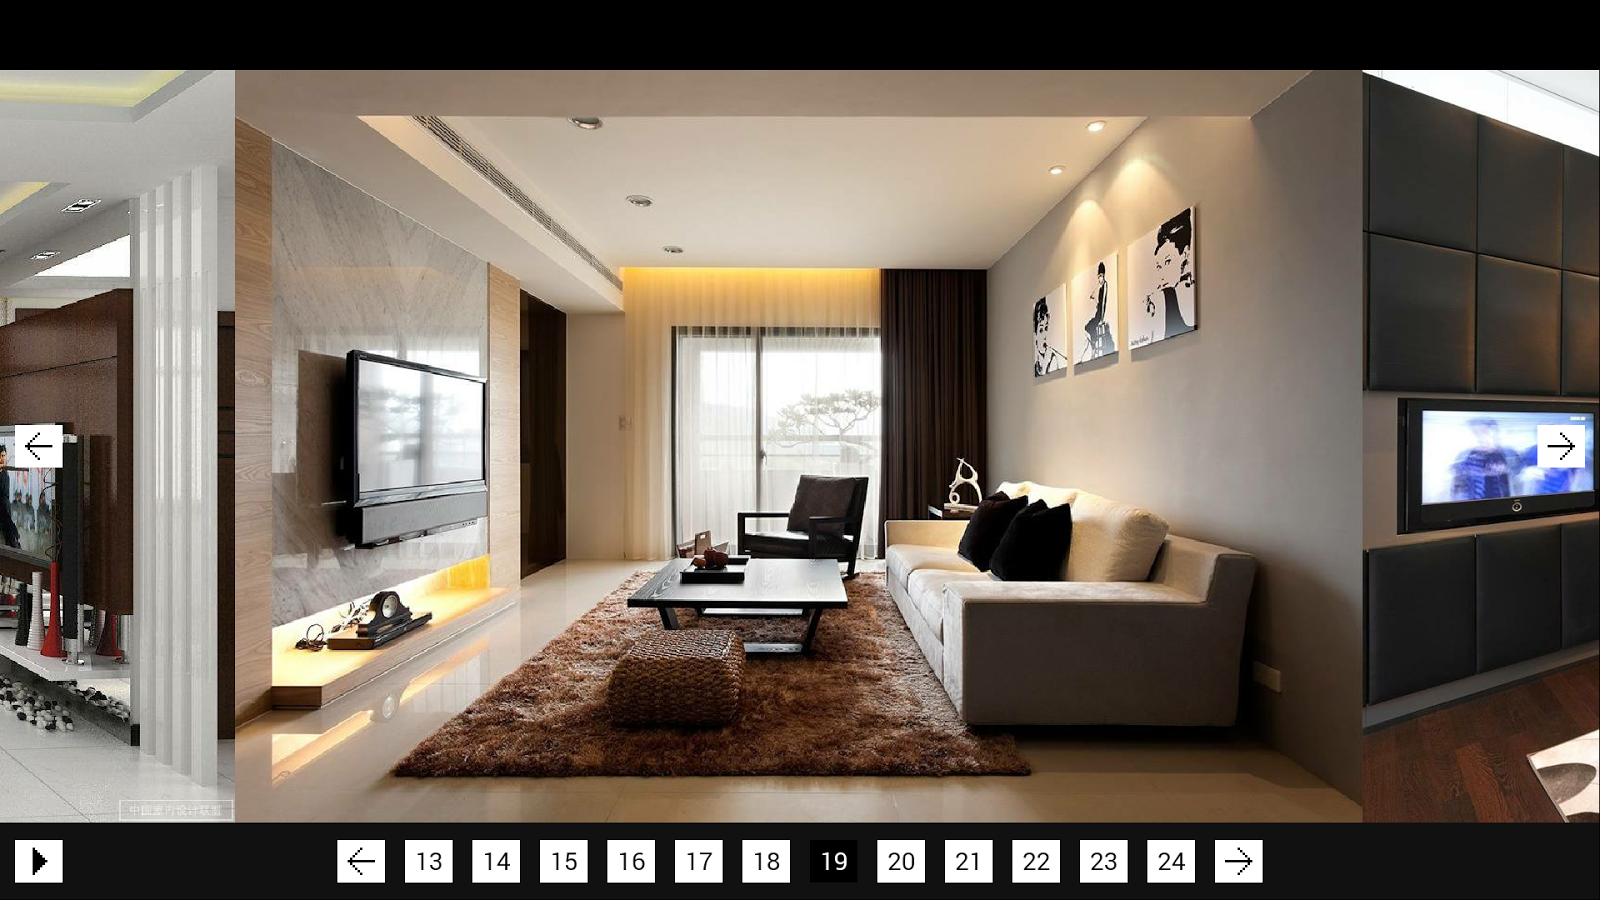 Home interior design android apps on google play for Home interior photos